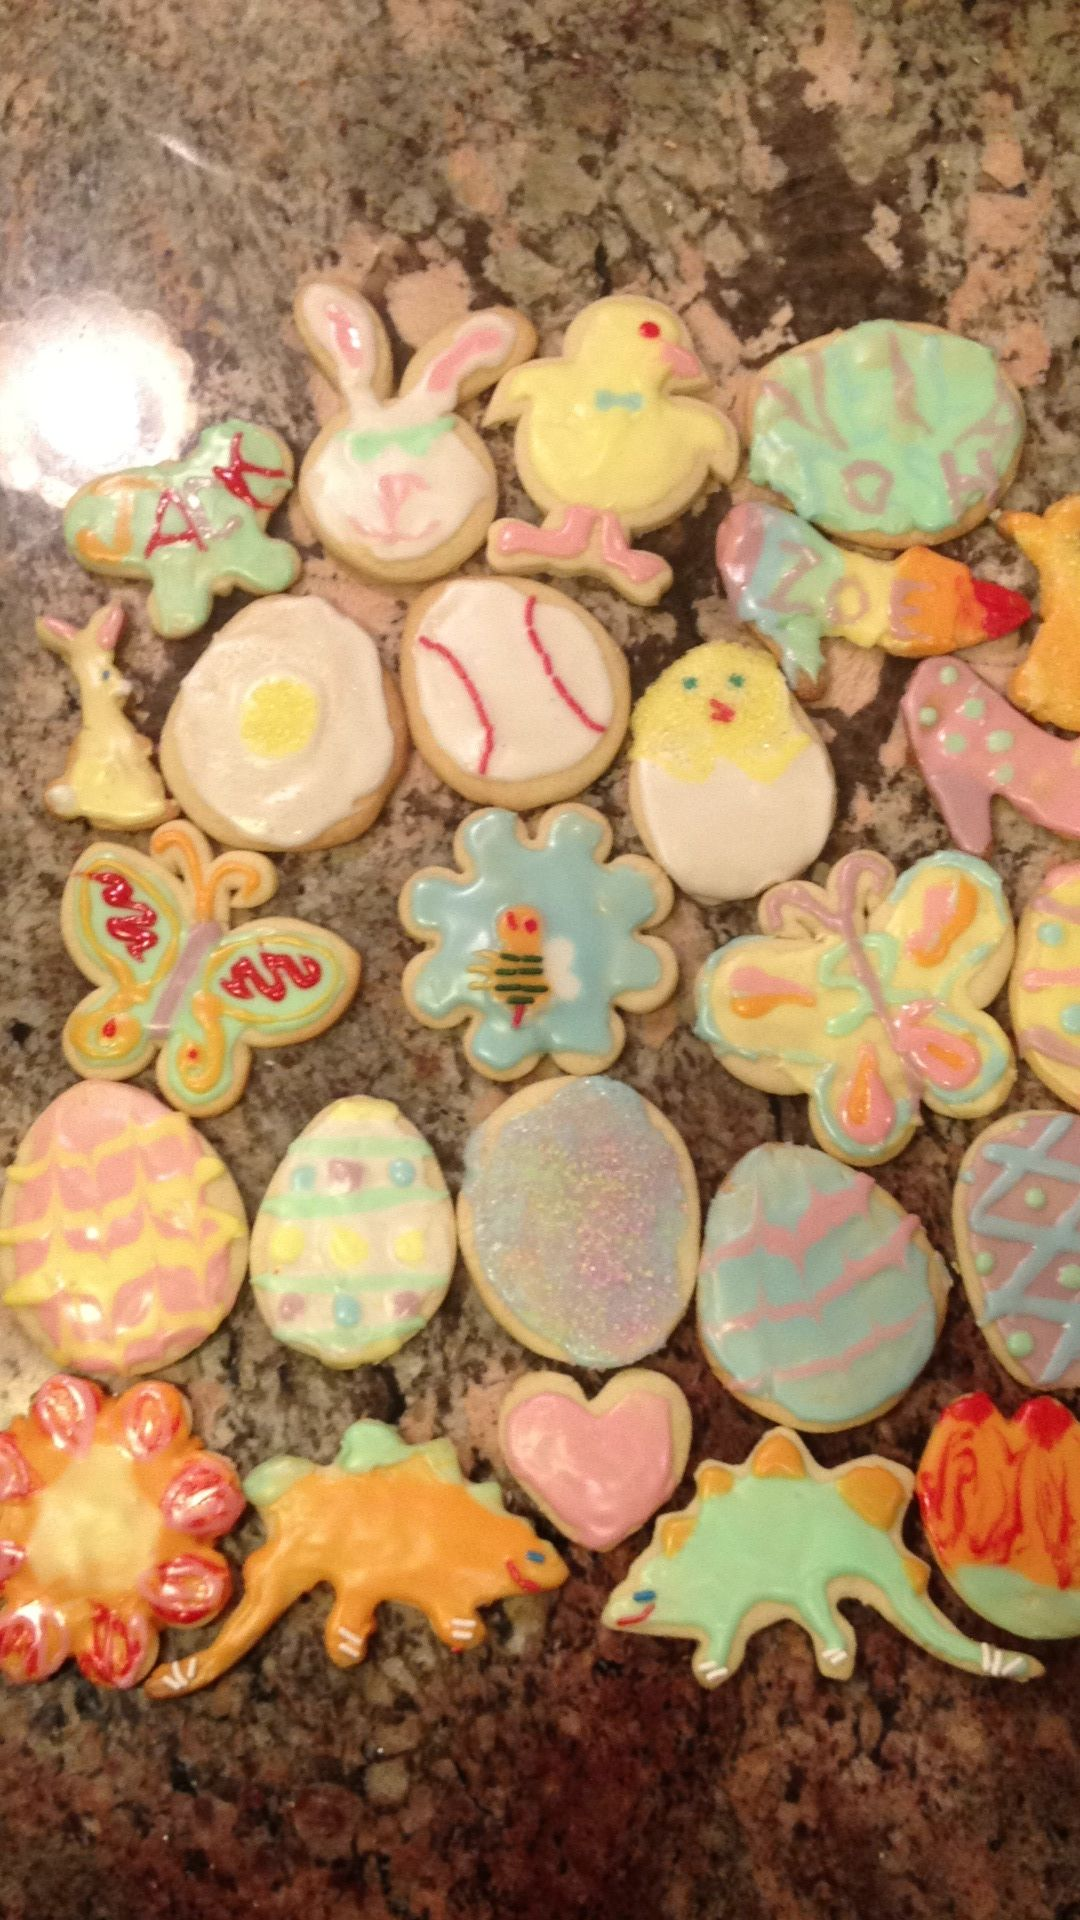 Easter Sugar Cookies homemade and frosted with family.